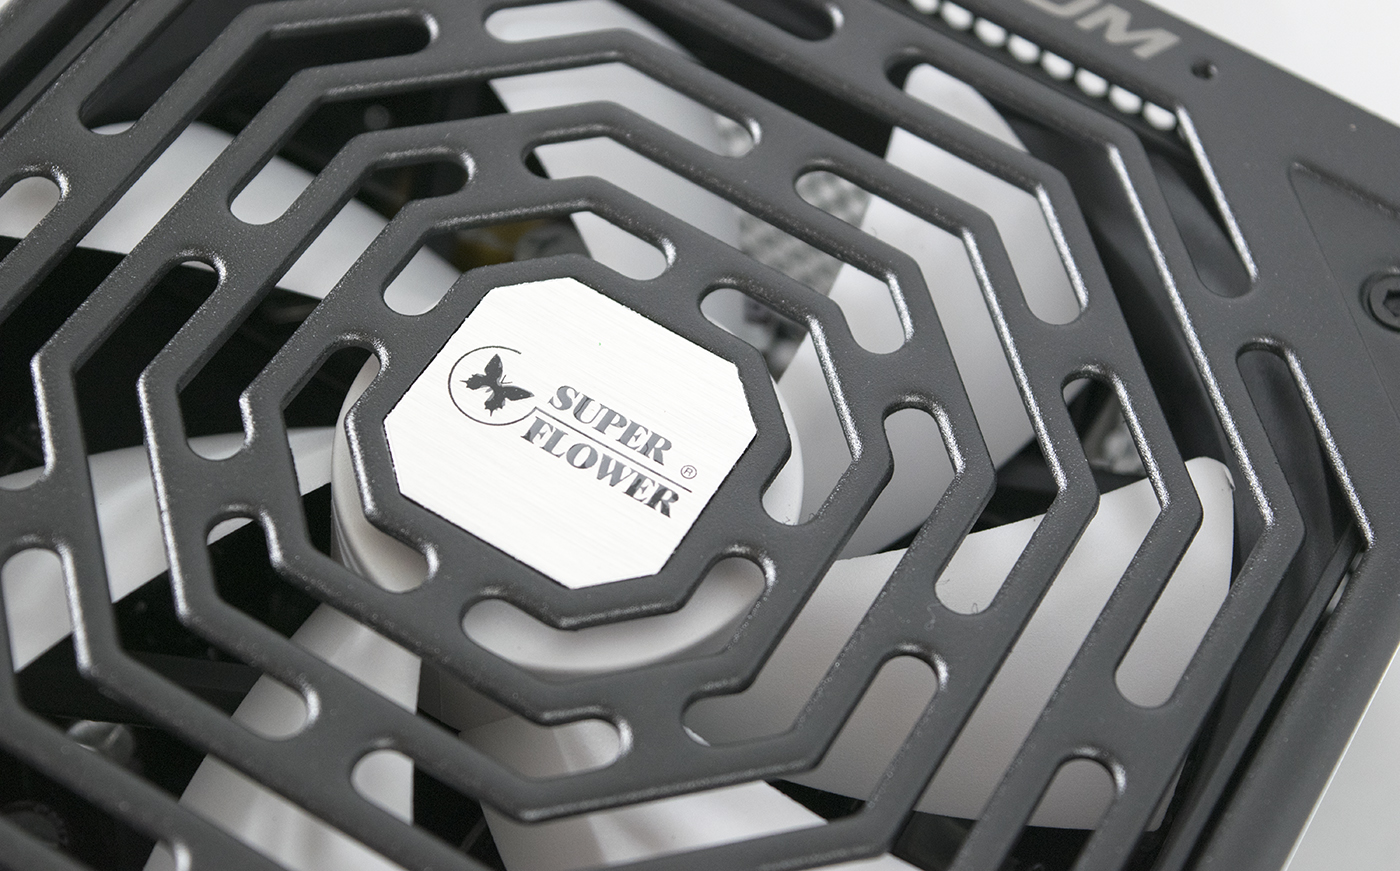 SuperFlower Leadex Platinum 750w Power Supply Overview 9